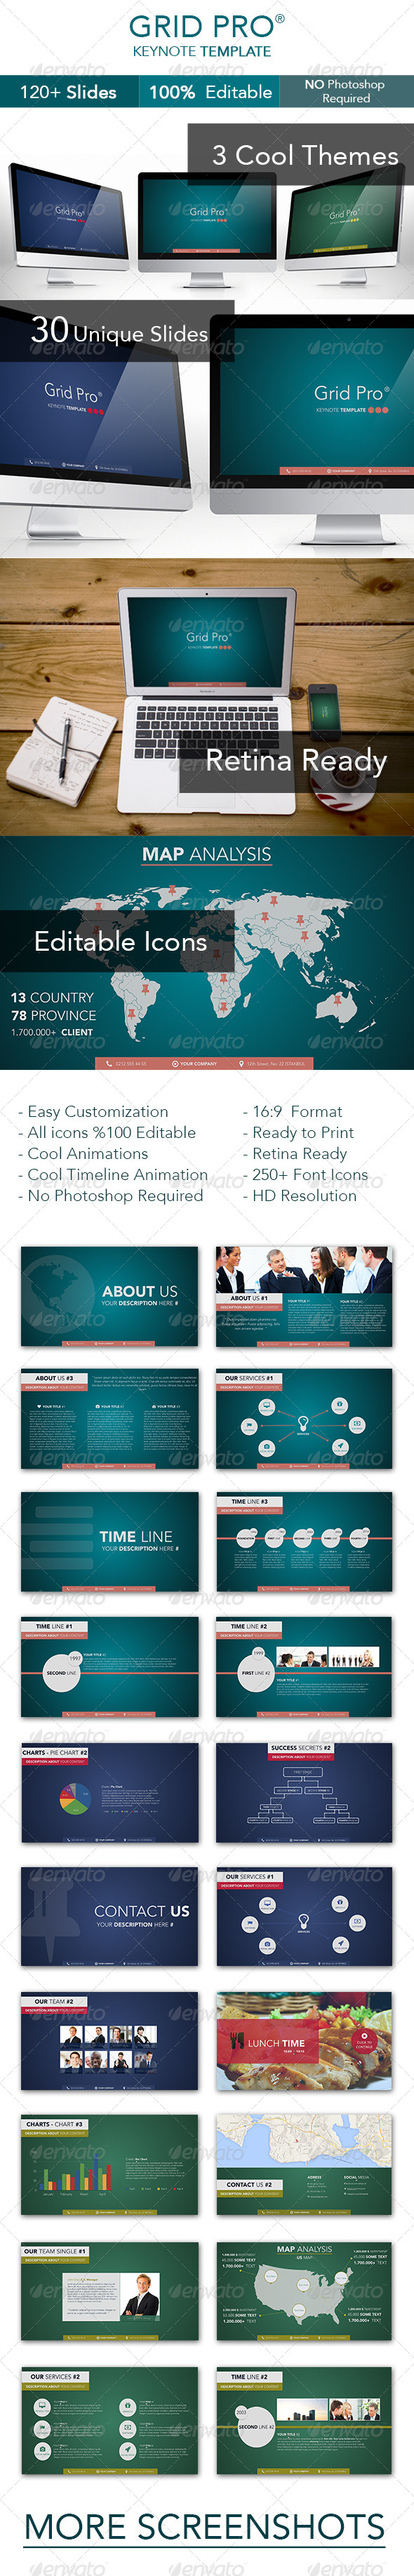 GraphicRiver Grid Pro Keynote Template 6925605